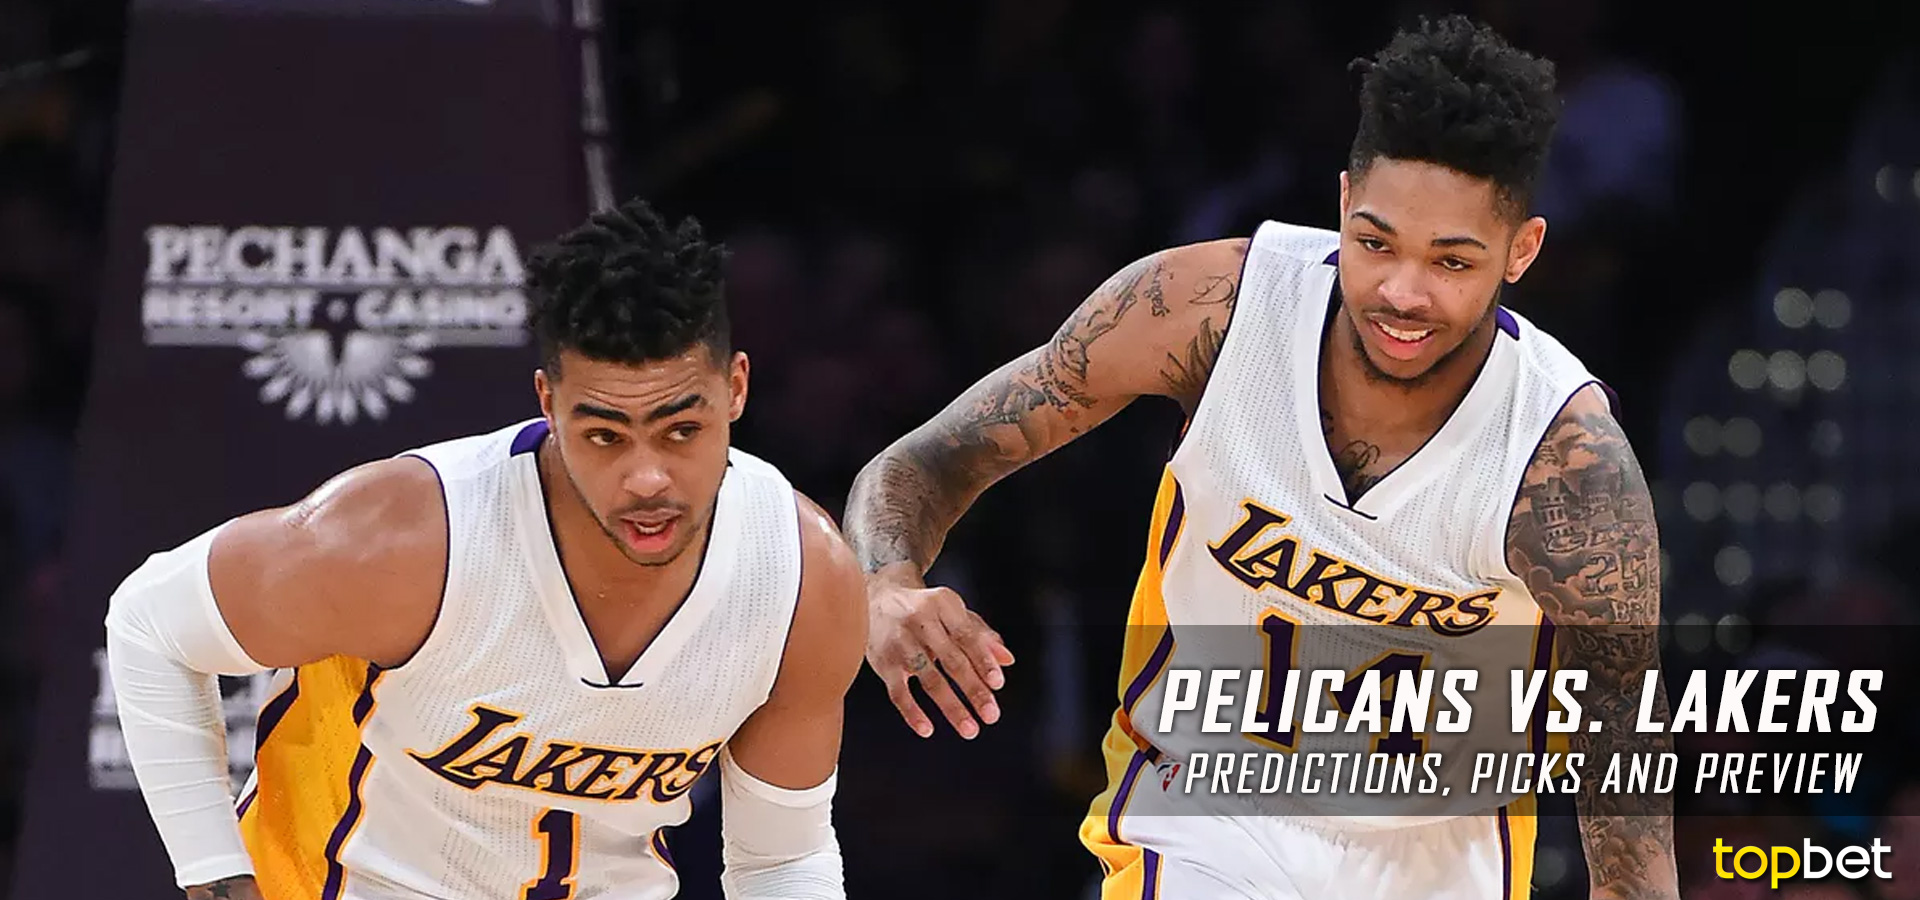 Pelicans Vs Lakers Predictions Picks Preview April 2017